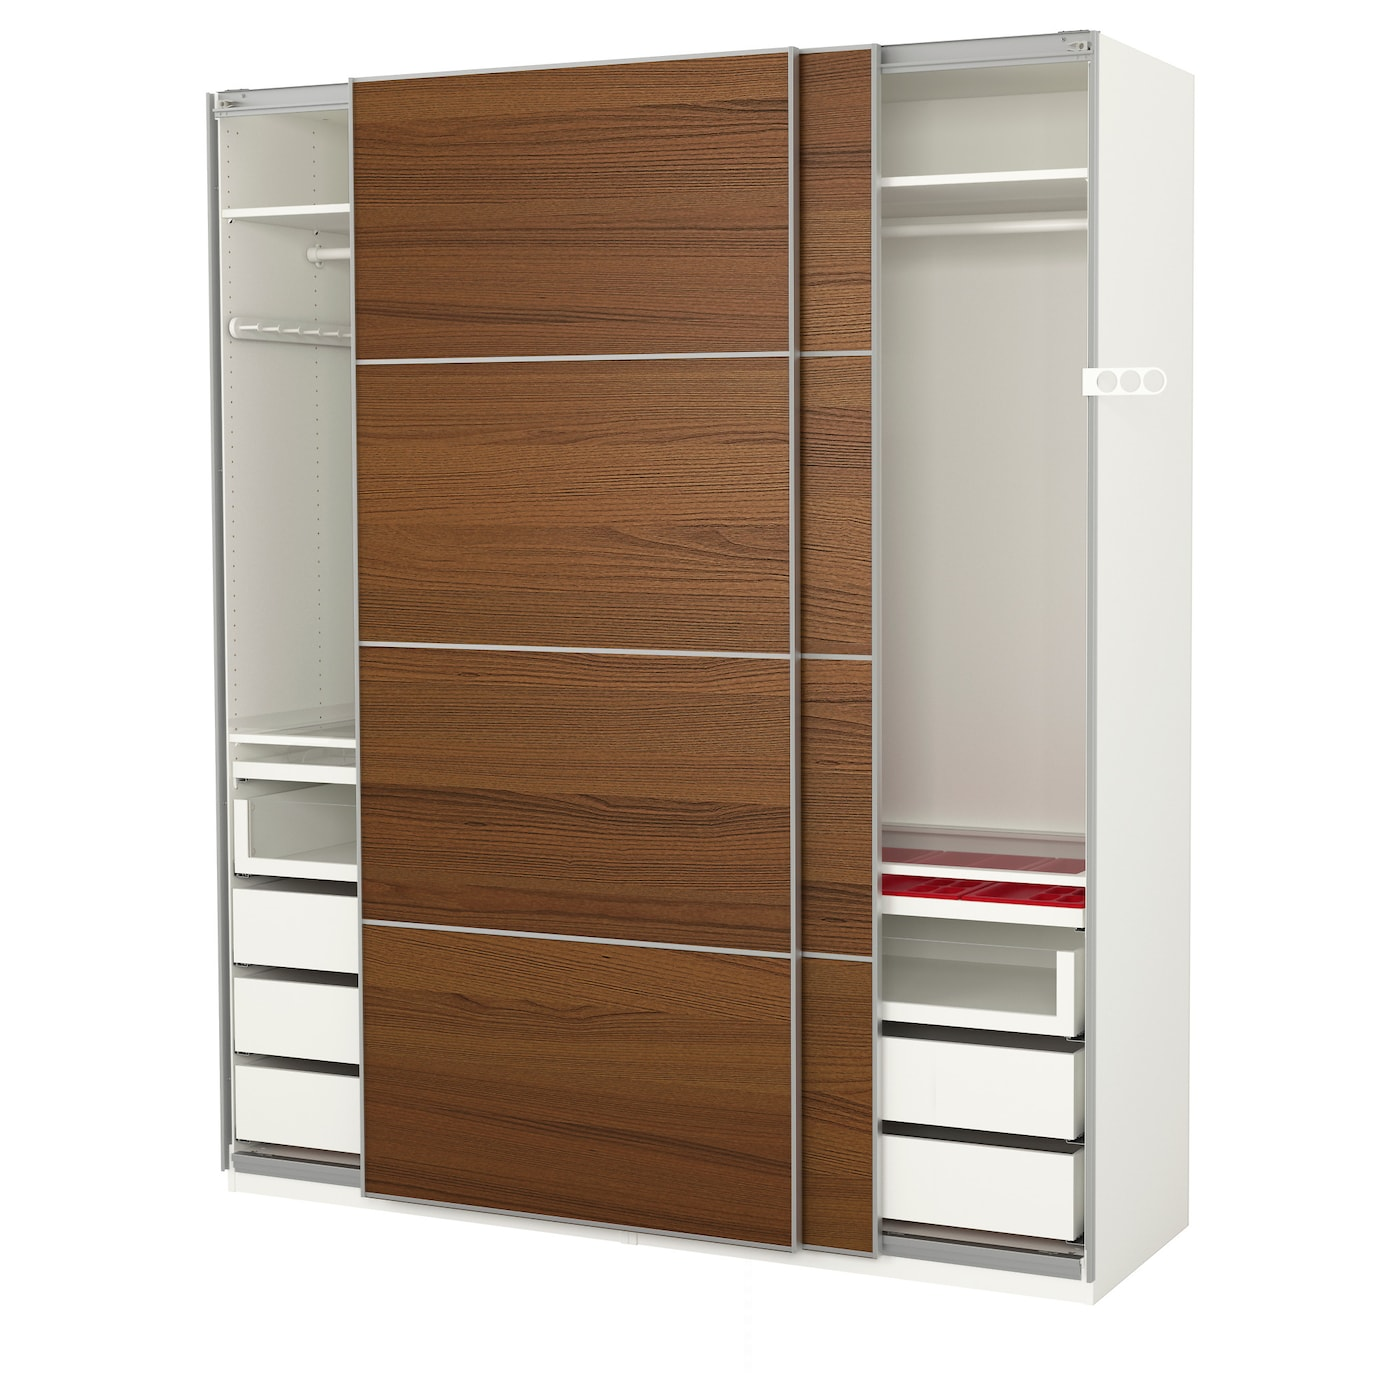 Pax wardrobe white ilseng brown stained ash veneer 200x66x236 cm ikea - Ikea armoire 3 portes ...